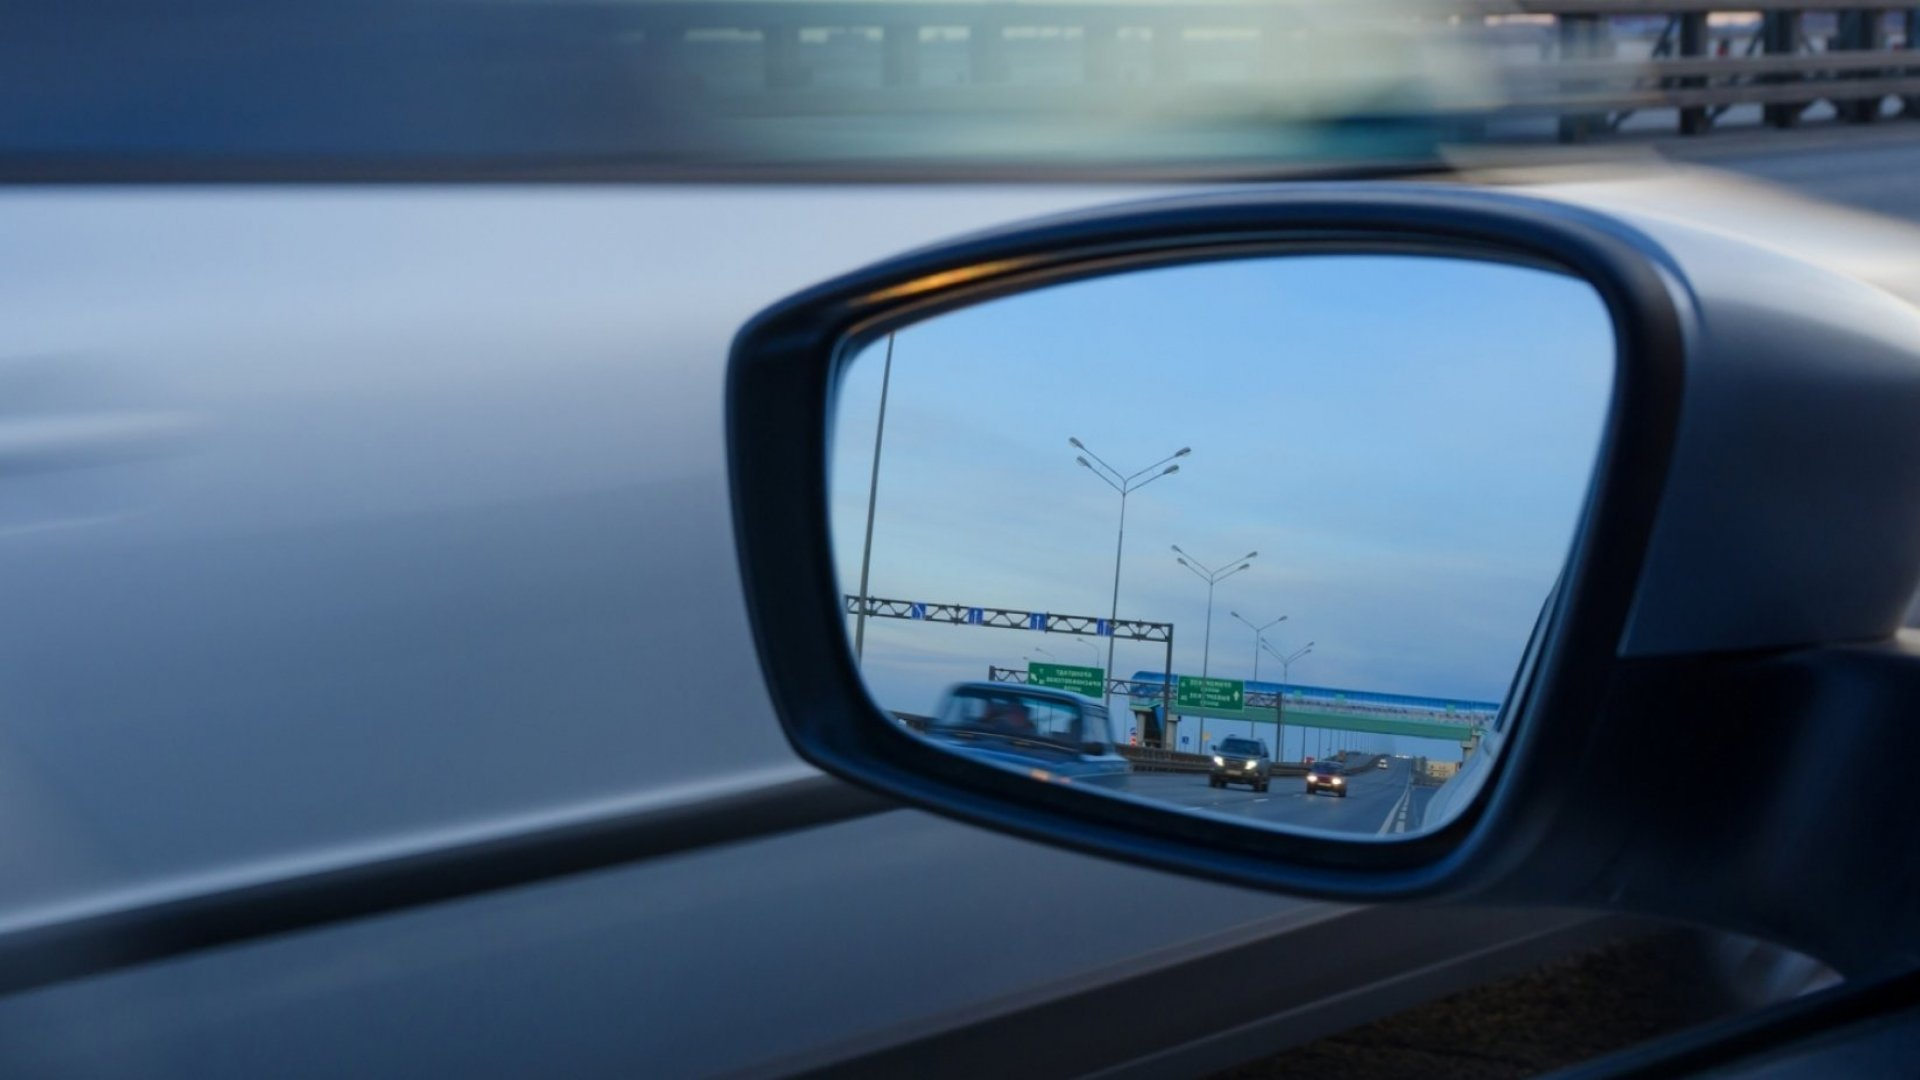 10 Ways to Recognize Your Leadership Blind Spots Before They Jeopardize Your Business